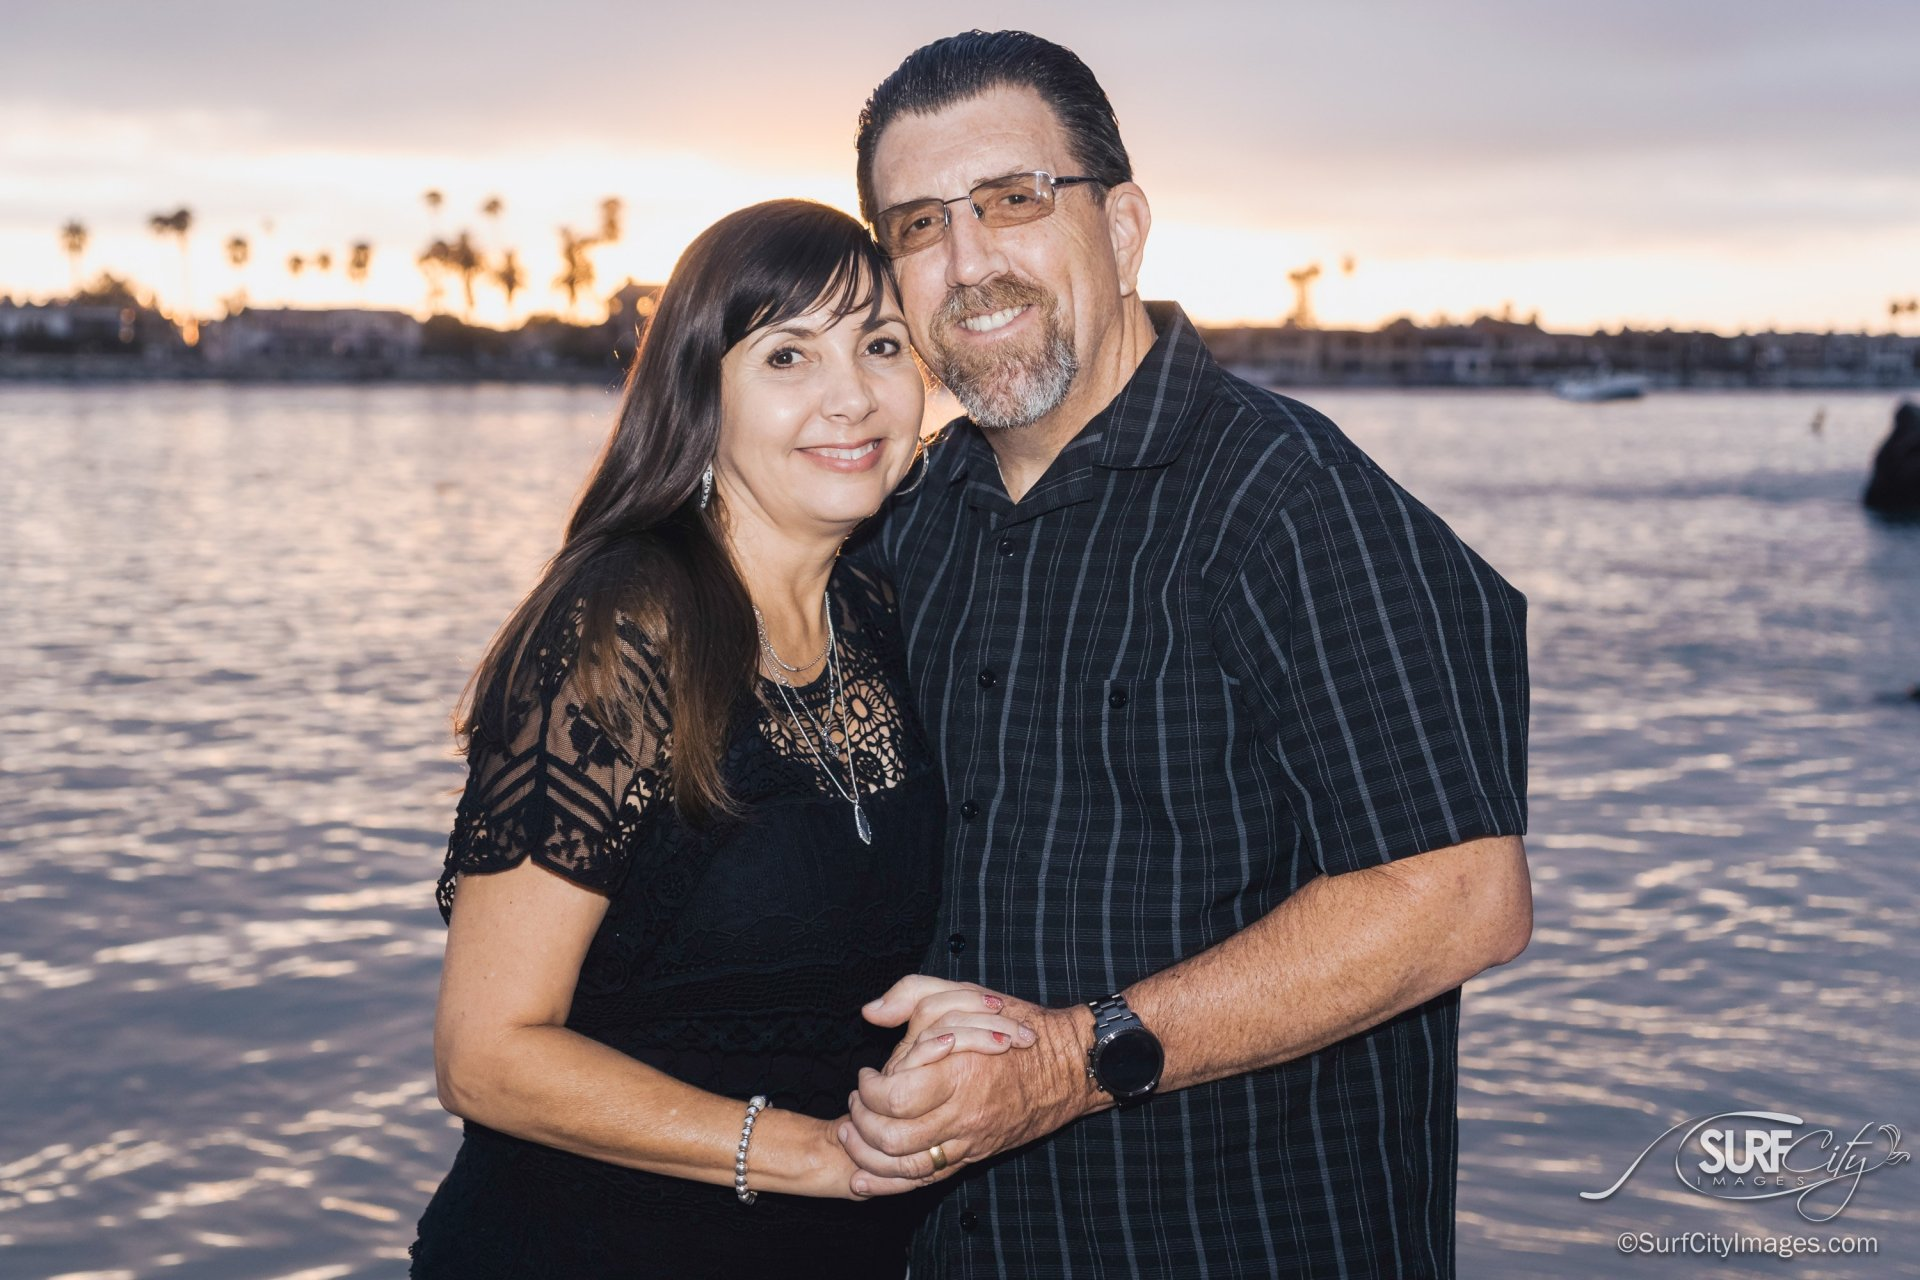 Sunset anniversary portraits at Corona Del Mar Beach